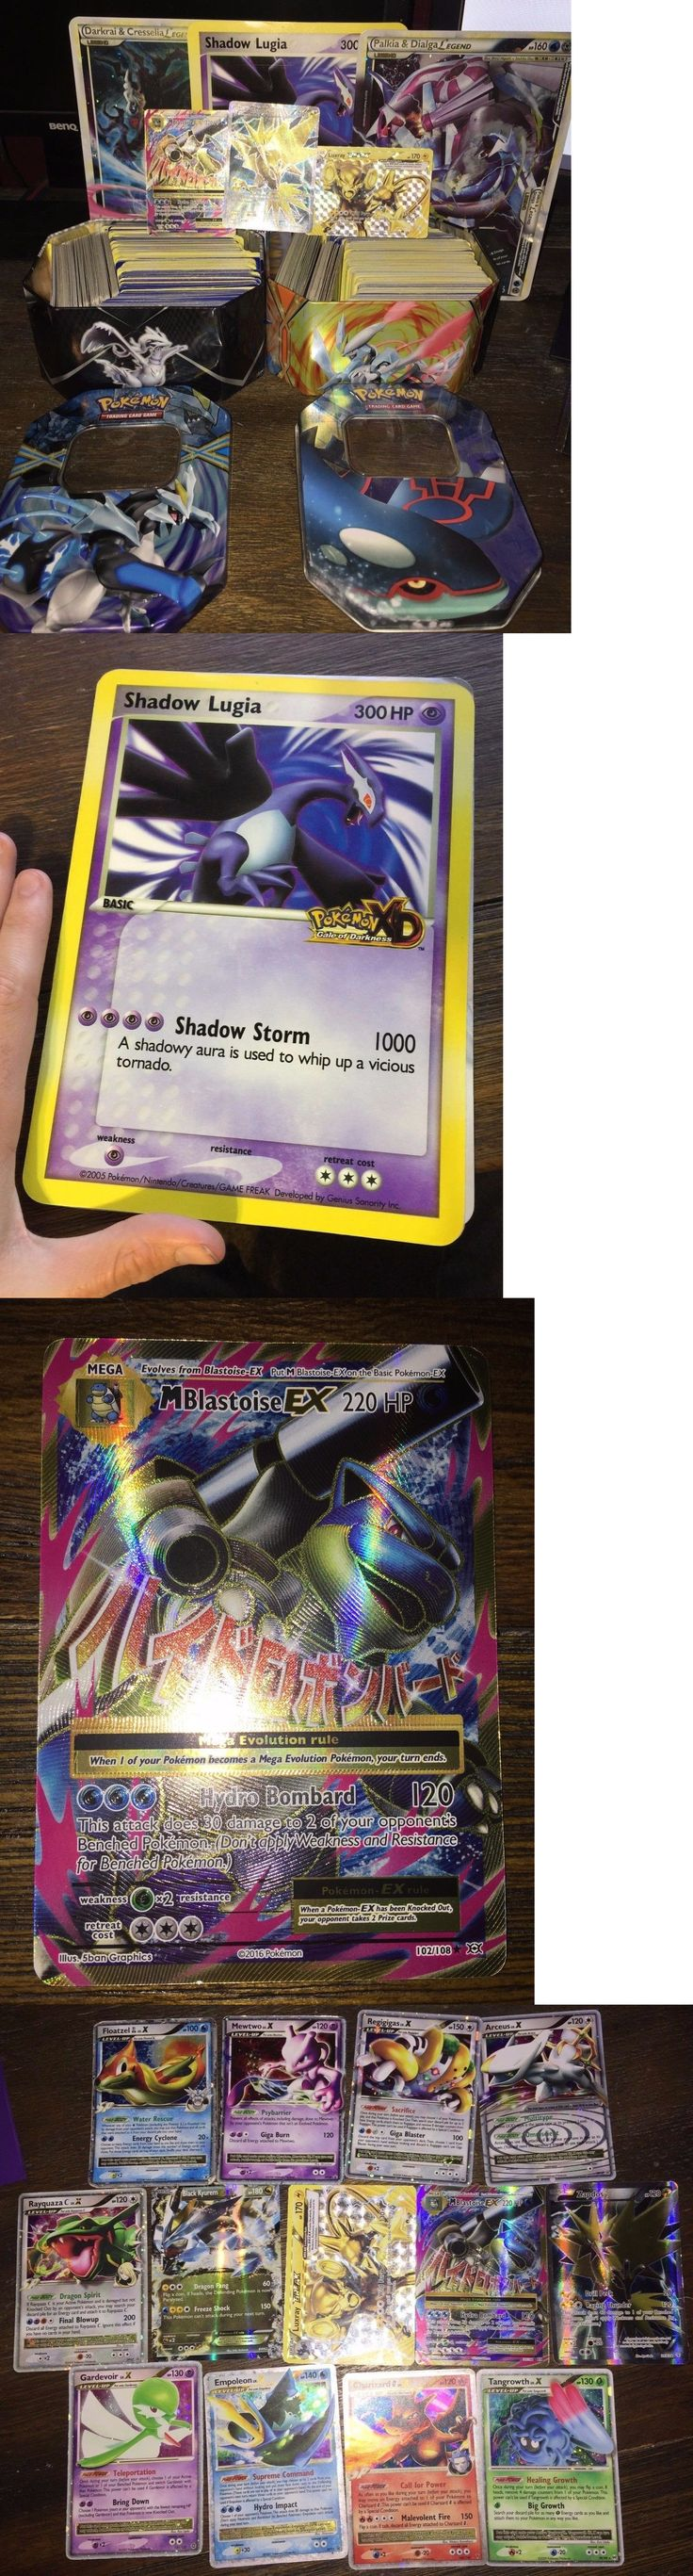 Pok mon Mixed Card Lots 104049: New 800 Pokemon Cards. New Giant Shadow Lugia Pokemon Card. 20+ Ex Cards. -> BUY IT NOW ONLY: $50 on eBay!